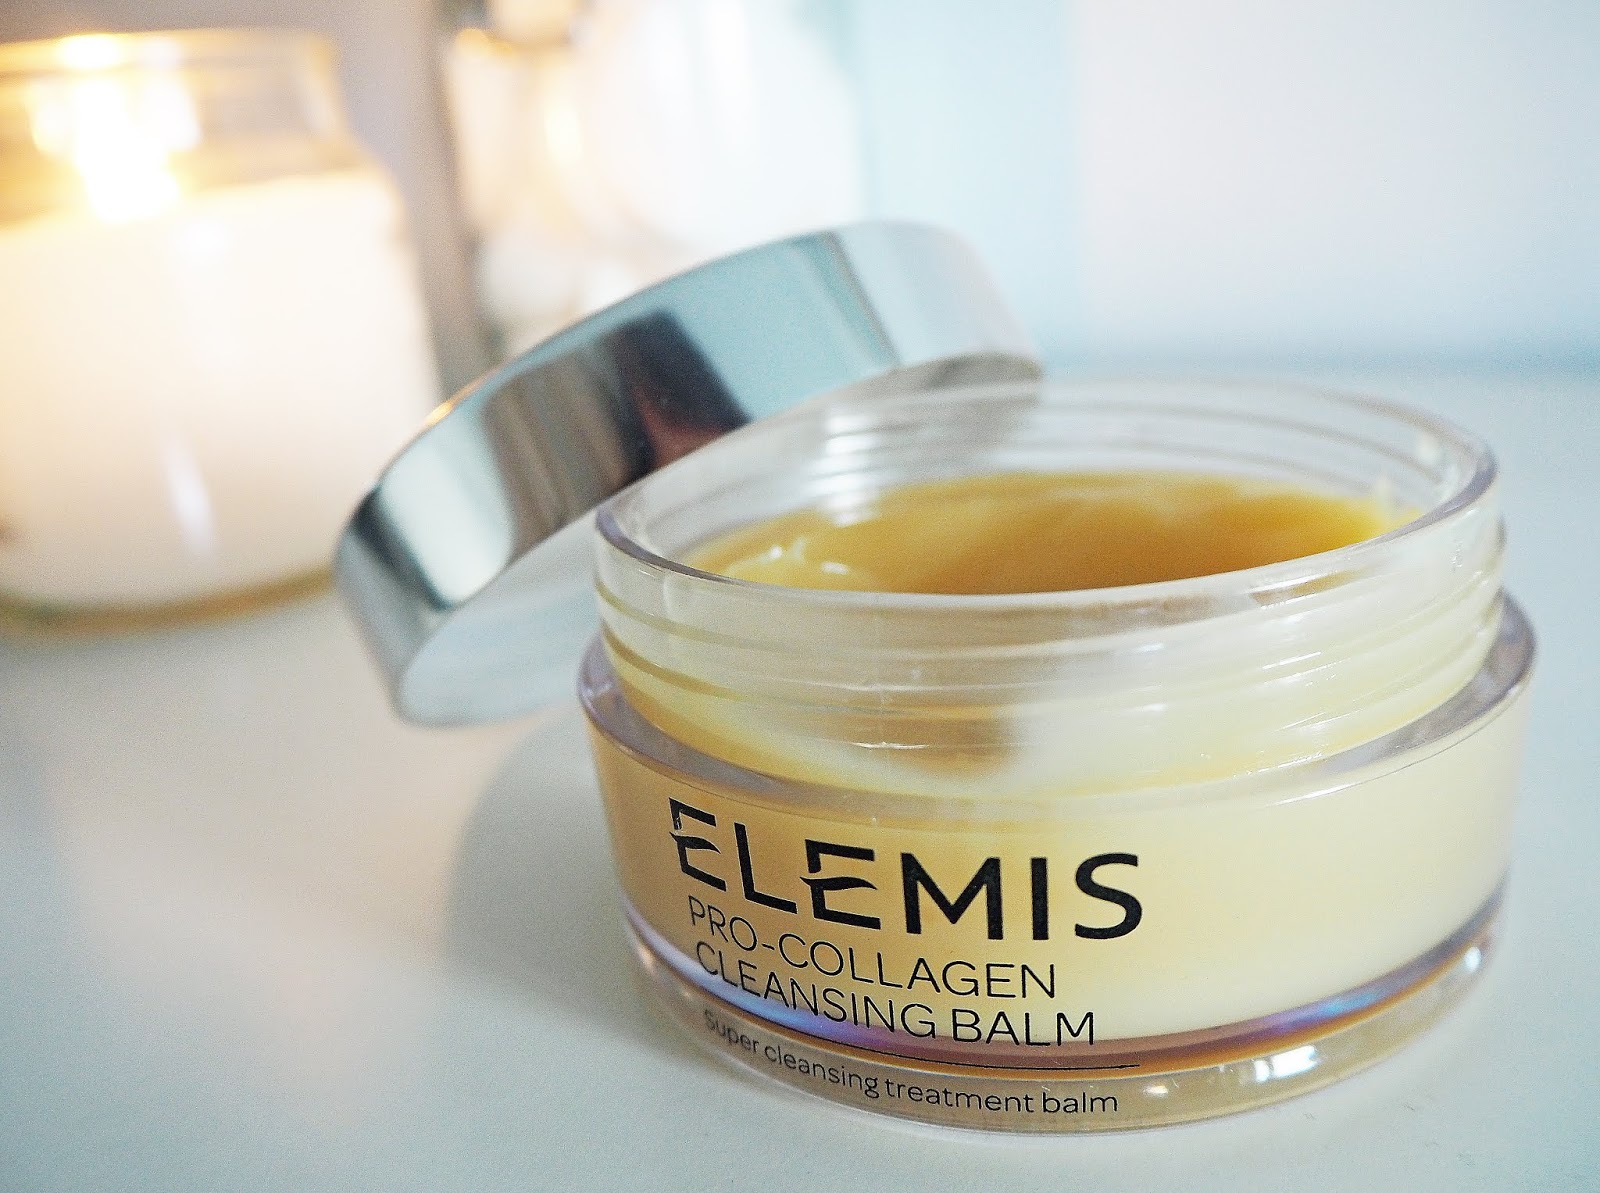 Elemis Pro Collagen Cleansing Balm Evening Skincare Routine